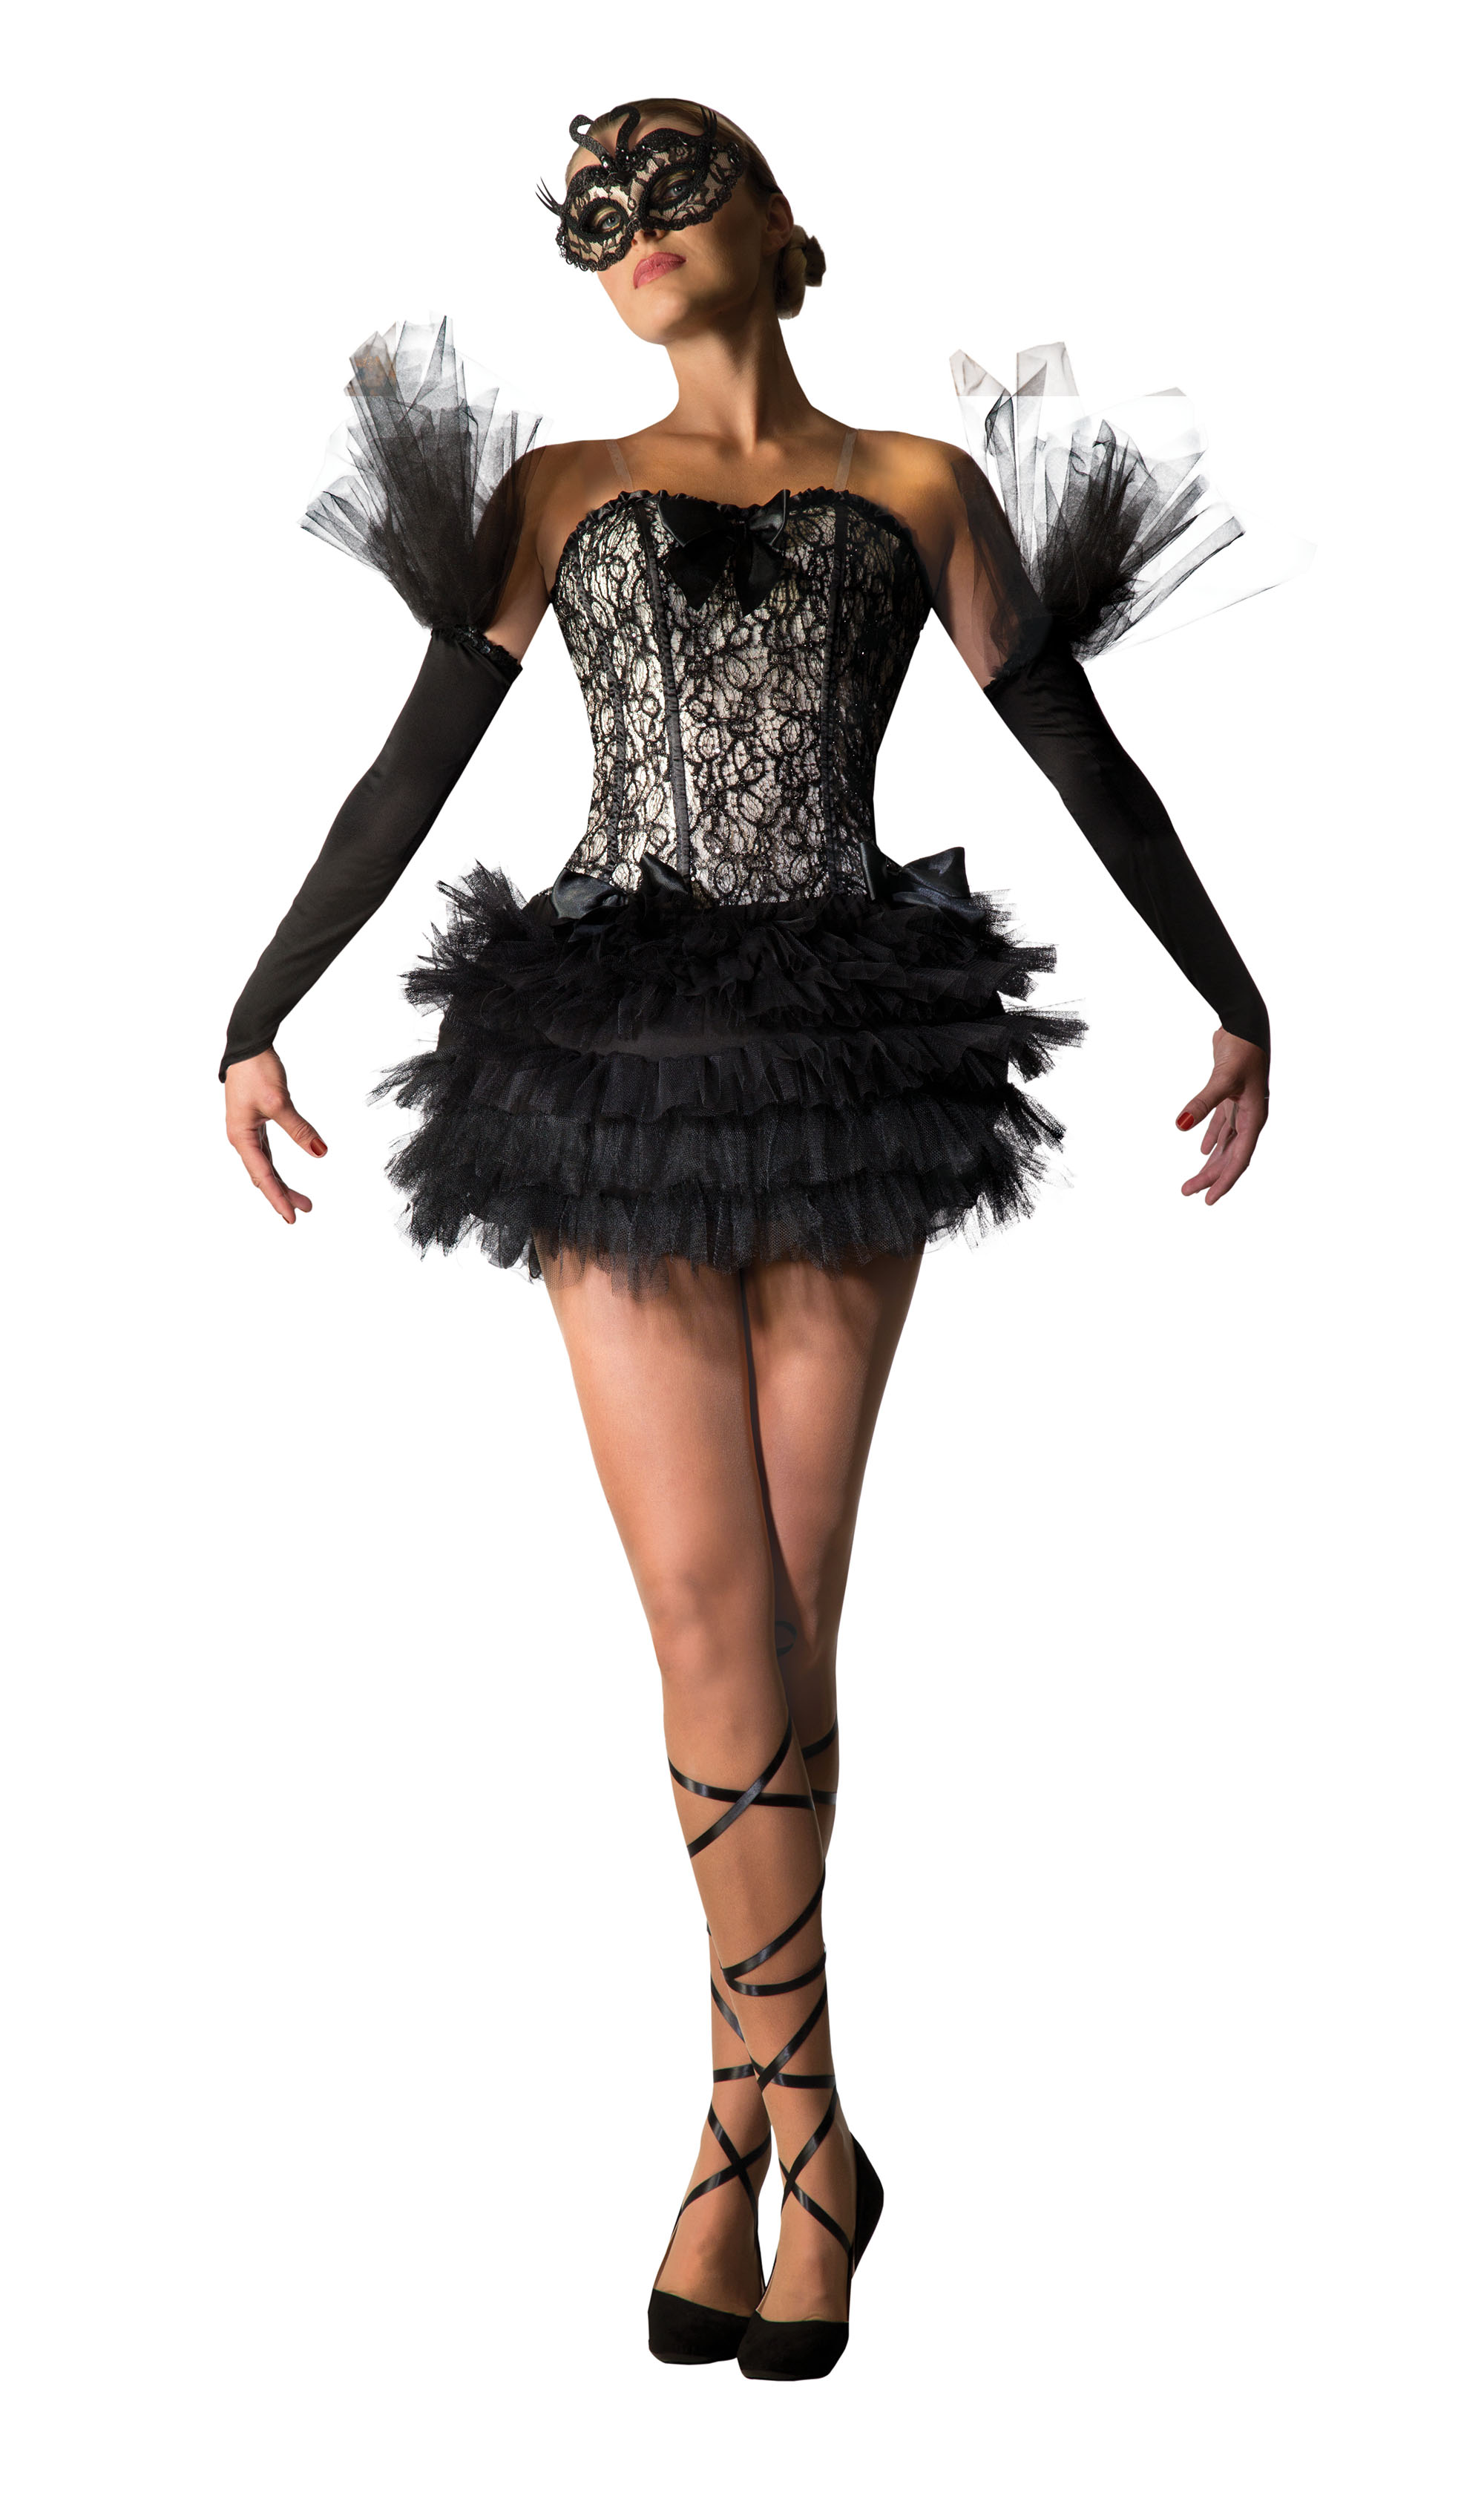 Black Swan Ballerina Fancy Dress Costume Outfit Womens Adult UK 10-12  sc 1 st  Fancy Dress 365 & Black Swan Ballerina Fancy Dress Costume Outfit Womens Adult UK 10 ...